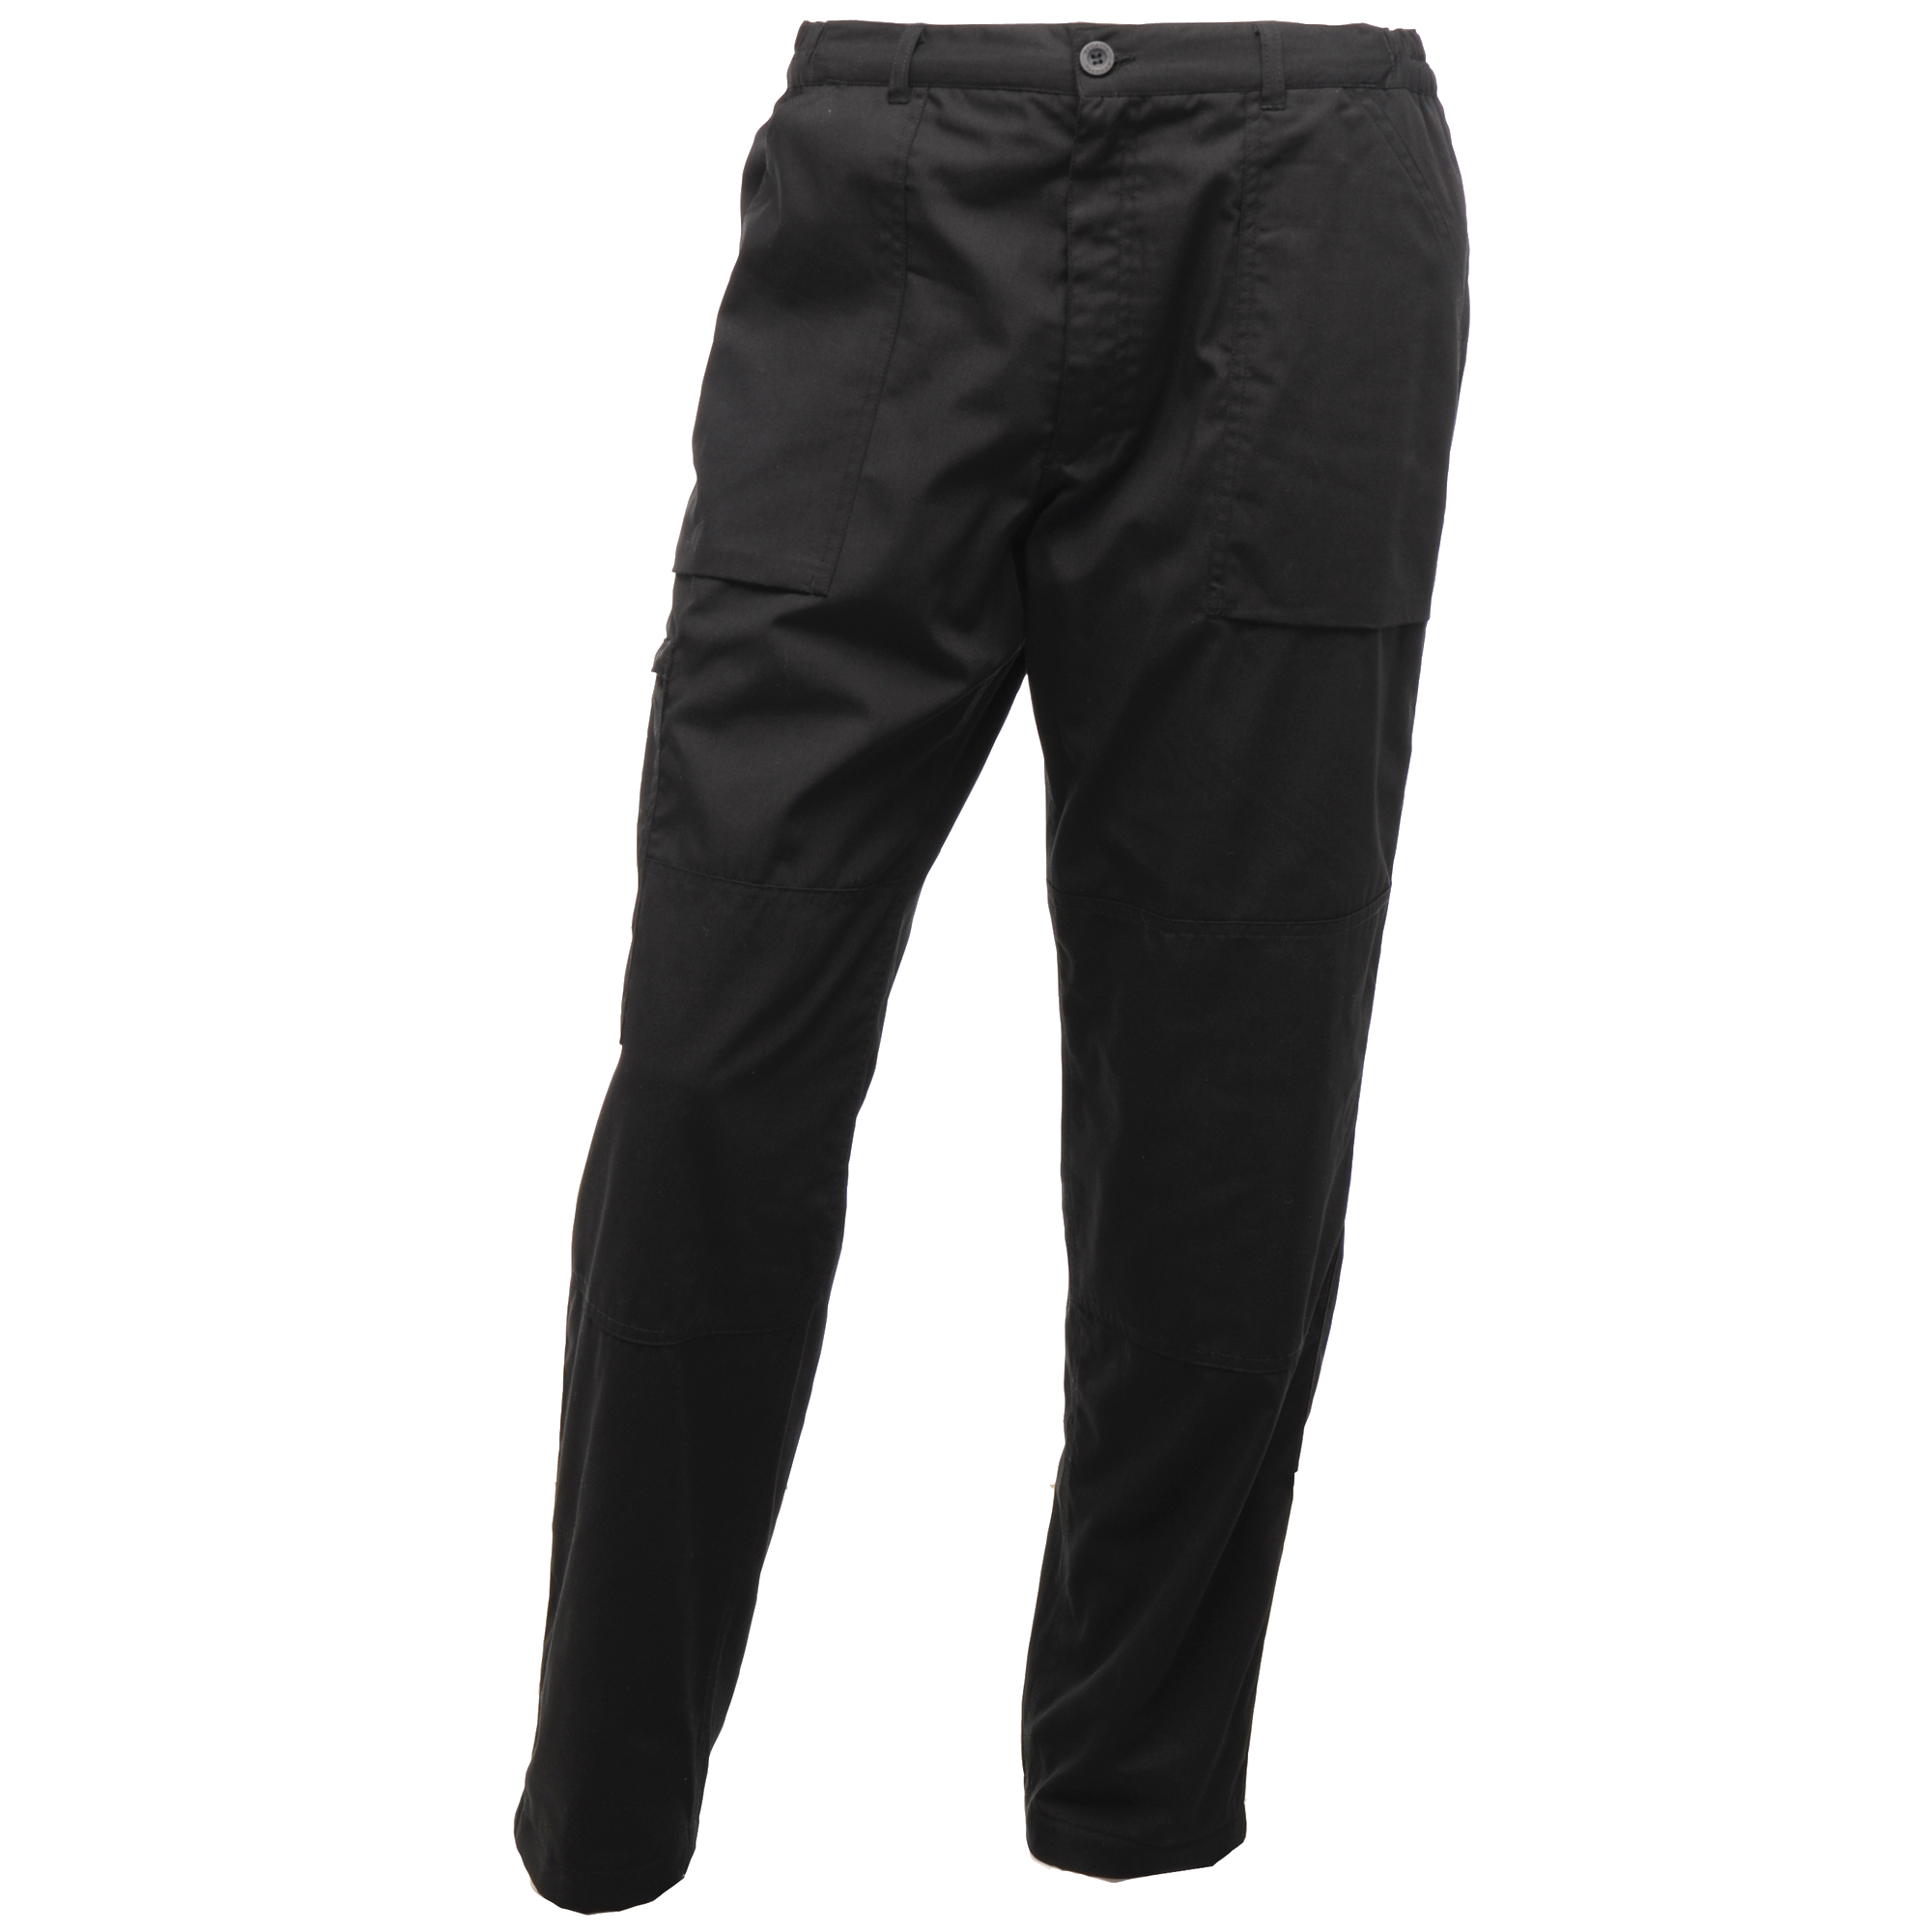 Regatta-Mens-Sports-New-Lined-Action-Trousers